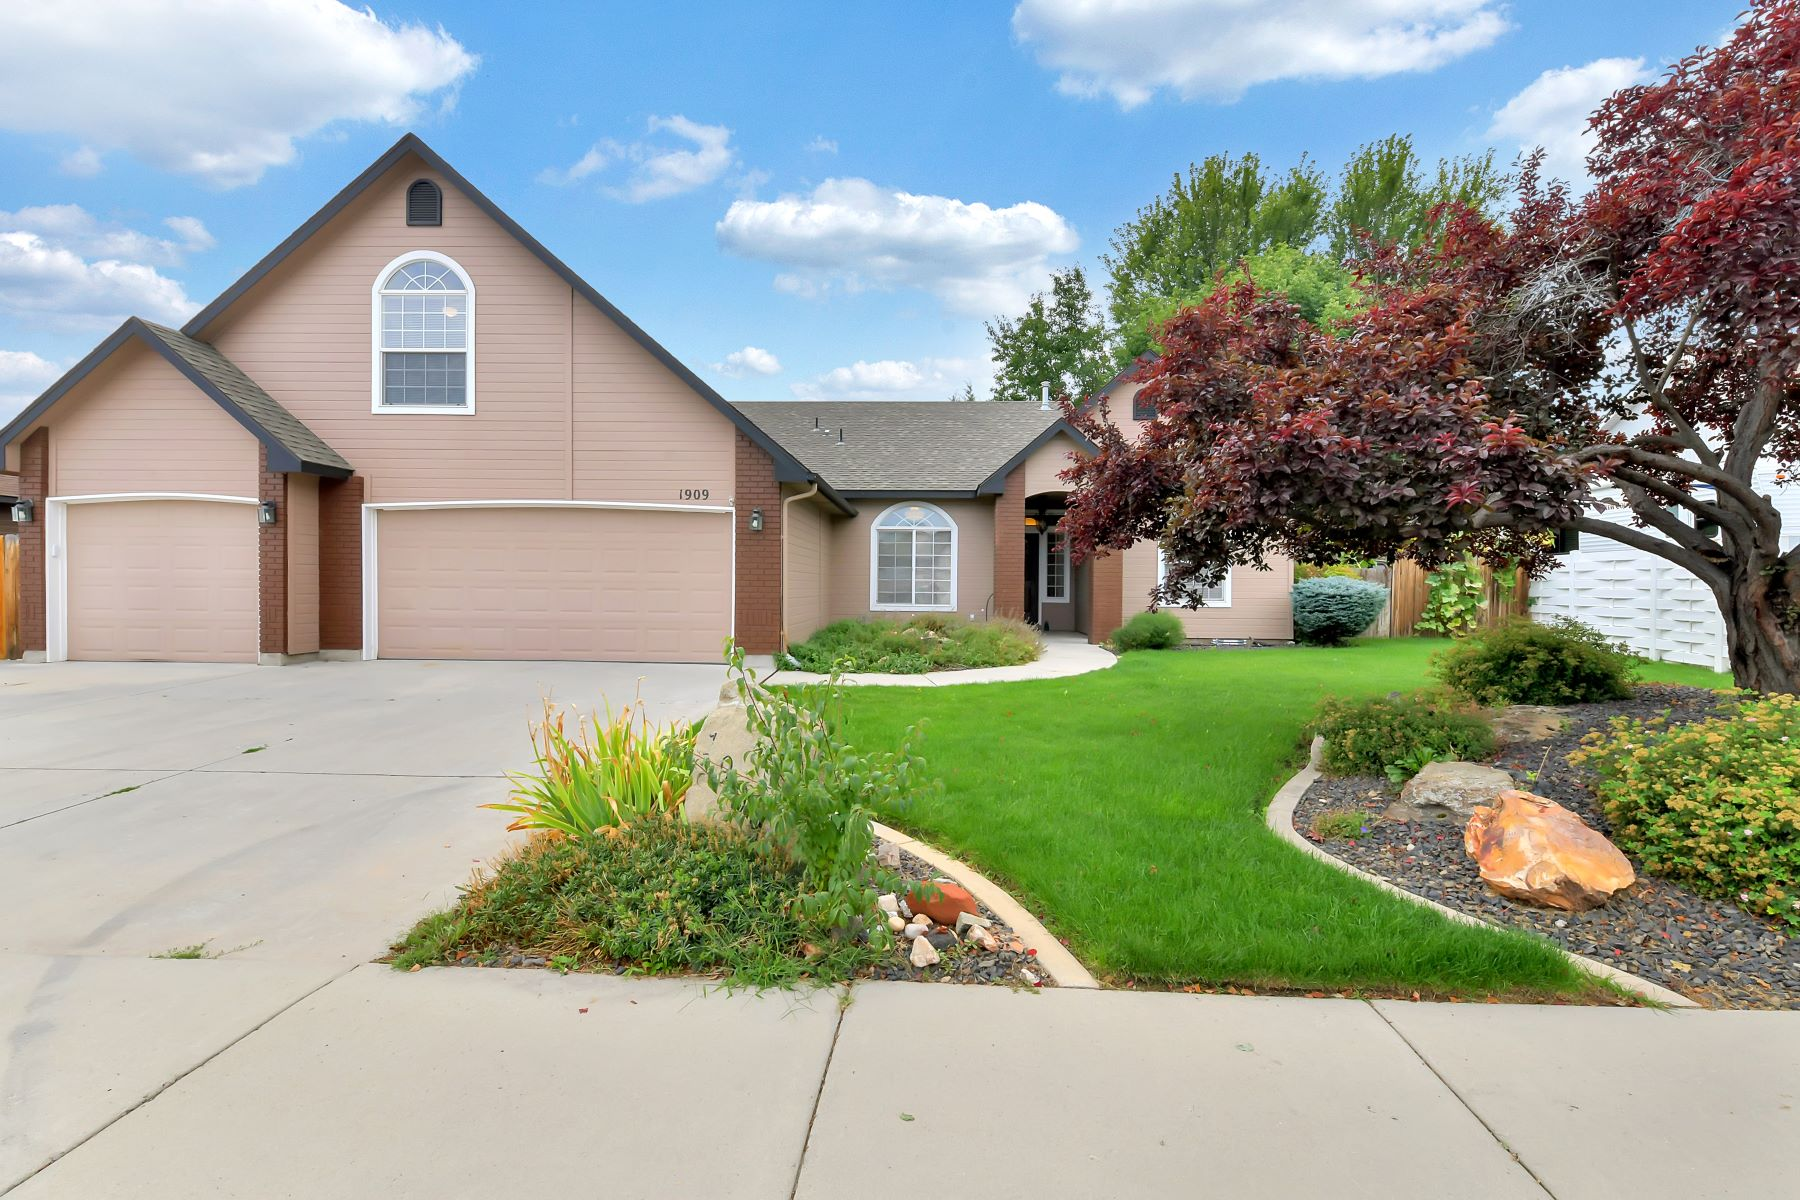 Single Family Homes for Sale at 1909 Dworshak Dr, Meridian 1909 E Dworshak Dr Meridian, Idaho 83642 United States